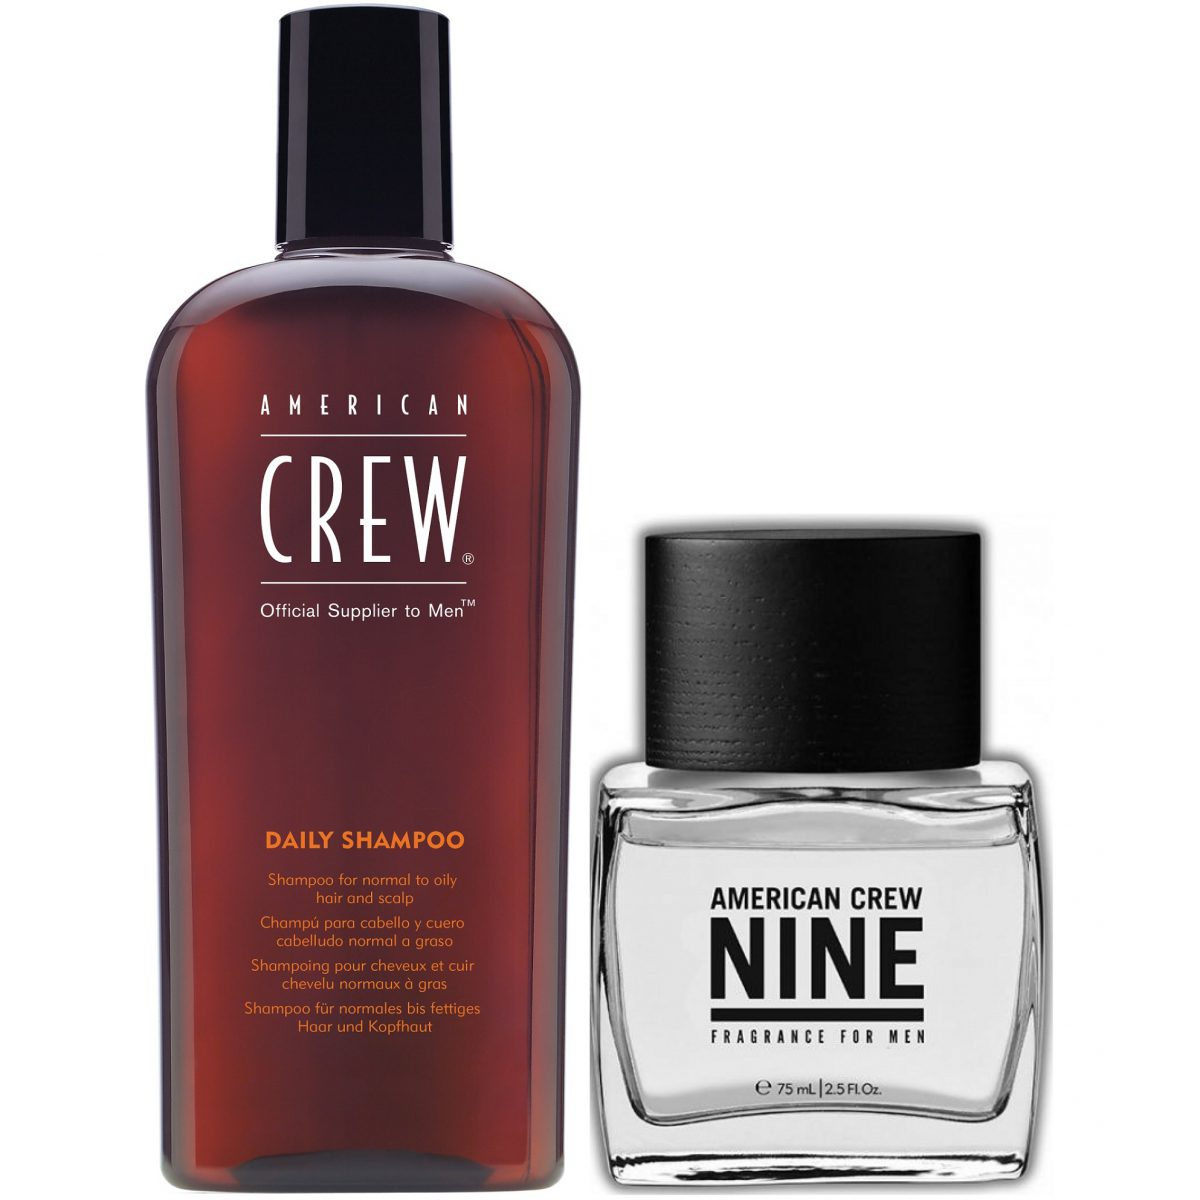 15_American-Crew-Daily-Shampoo-250ml_Nine_Fragance_75ml.jpg